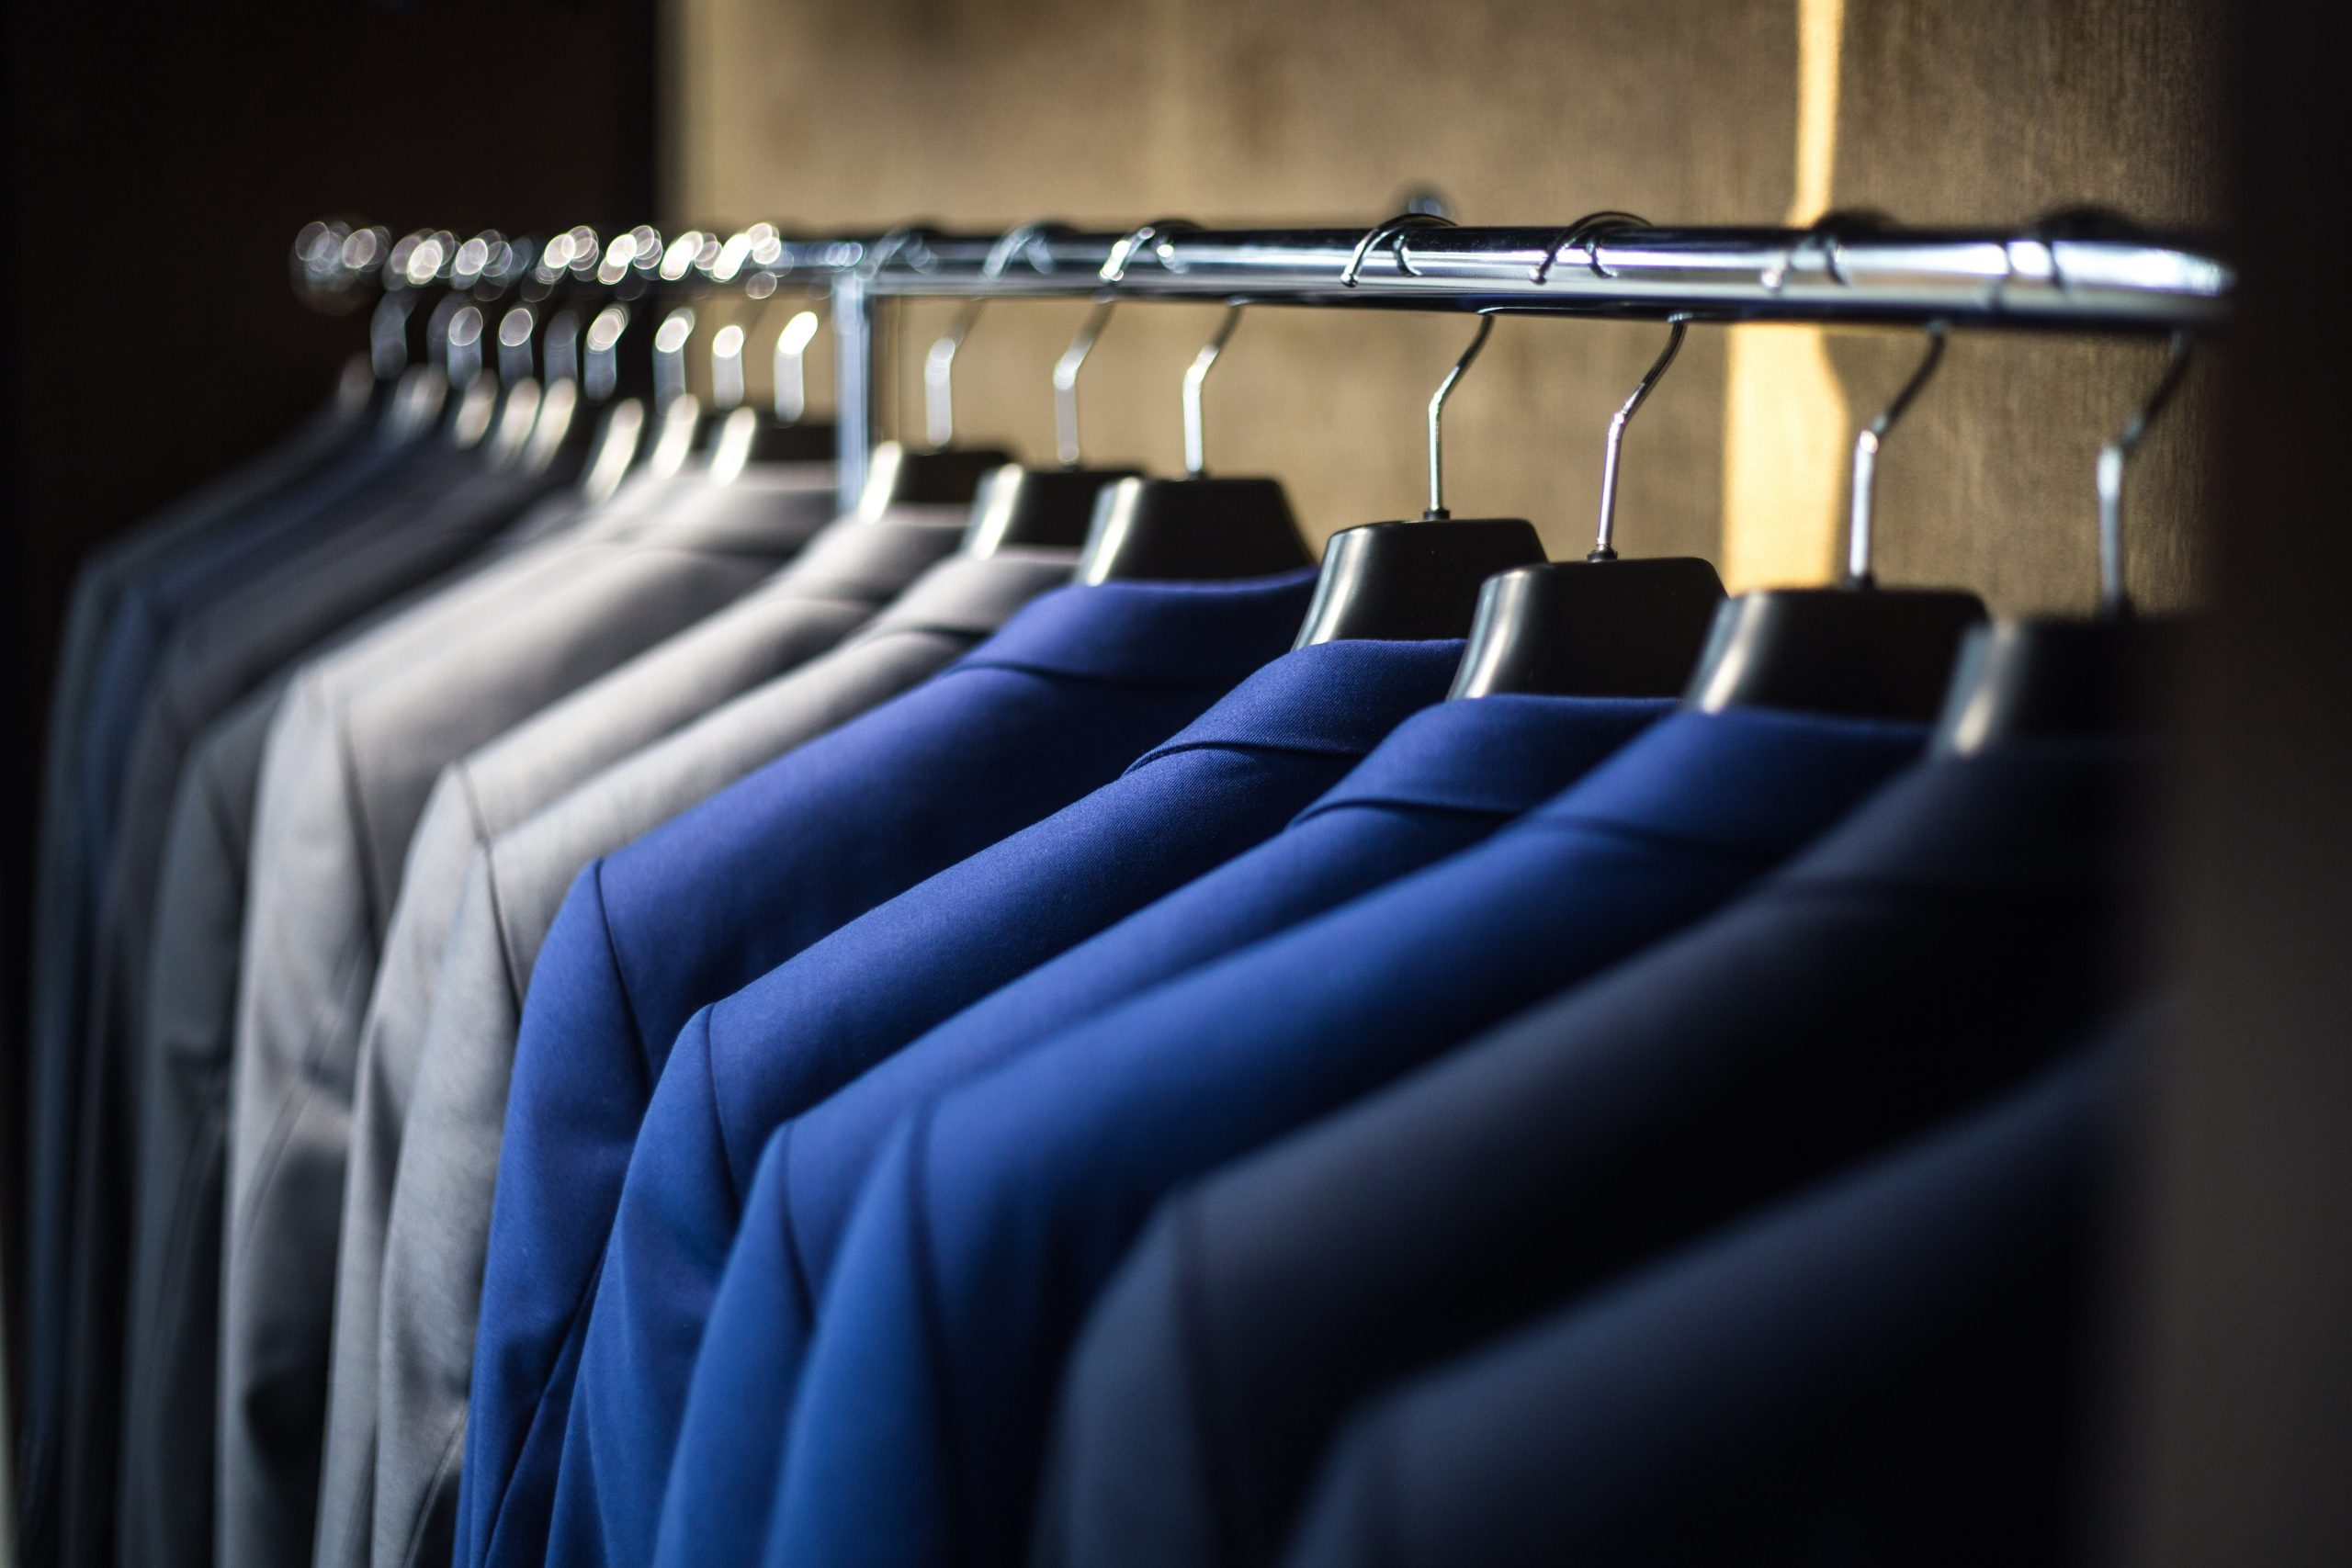 Dry cleaners in Glendale service